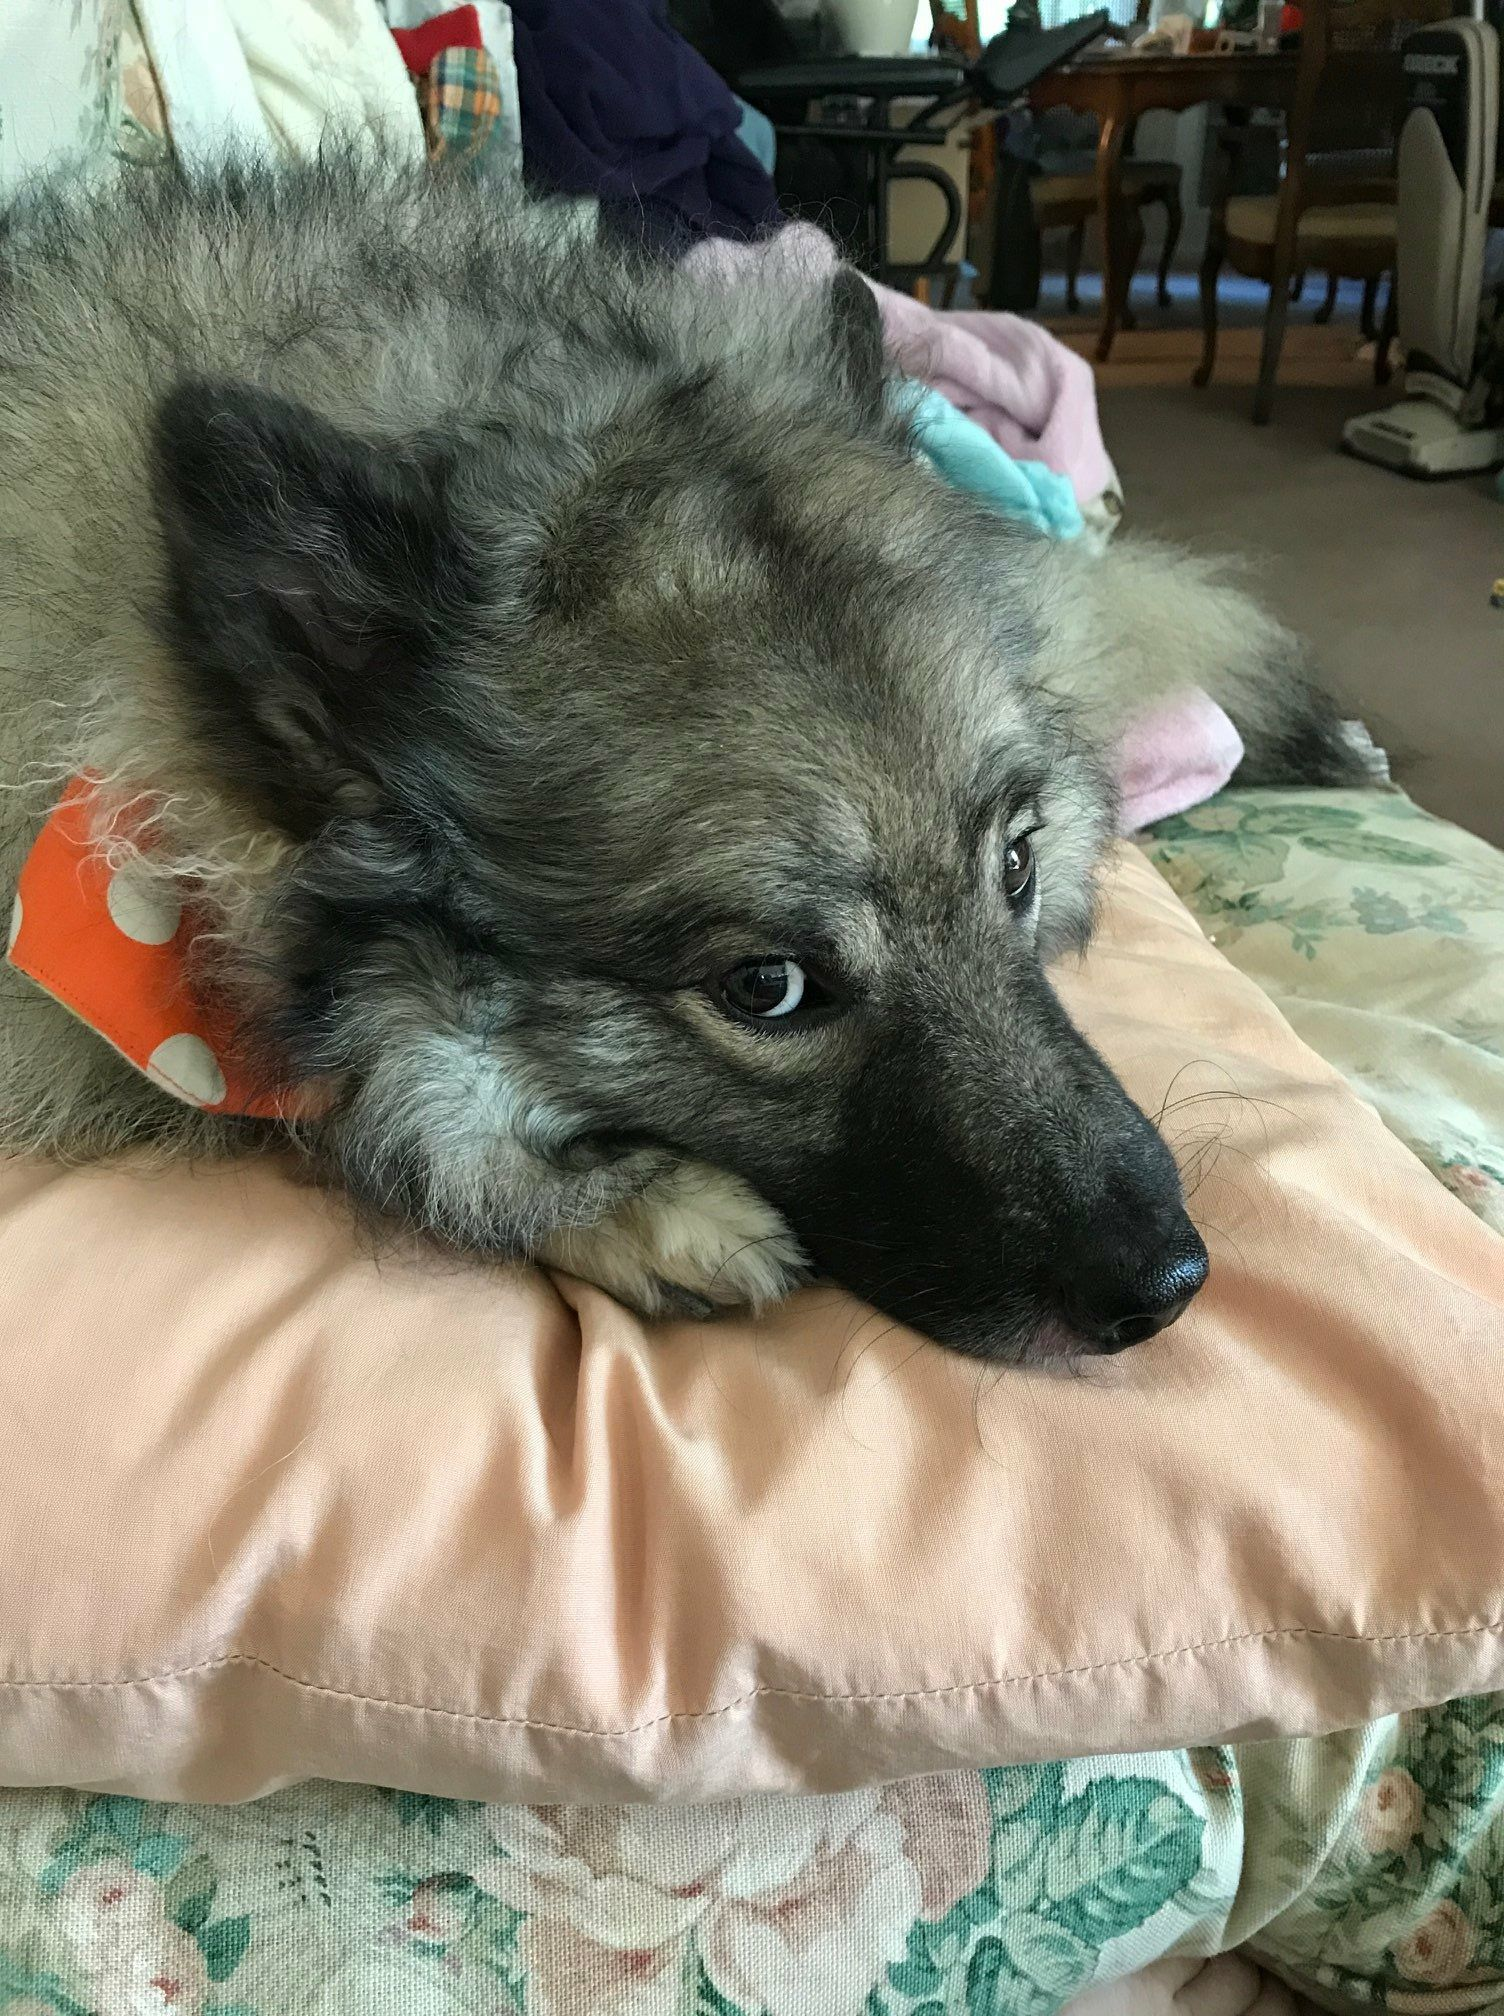 Pin by Cheryl Gnepper on Furry friend Keeshond, Furry